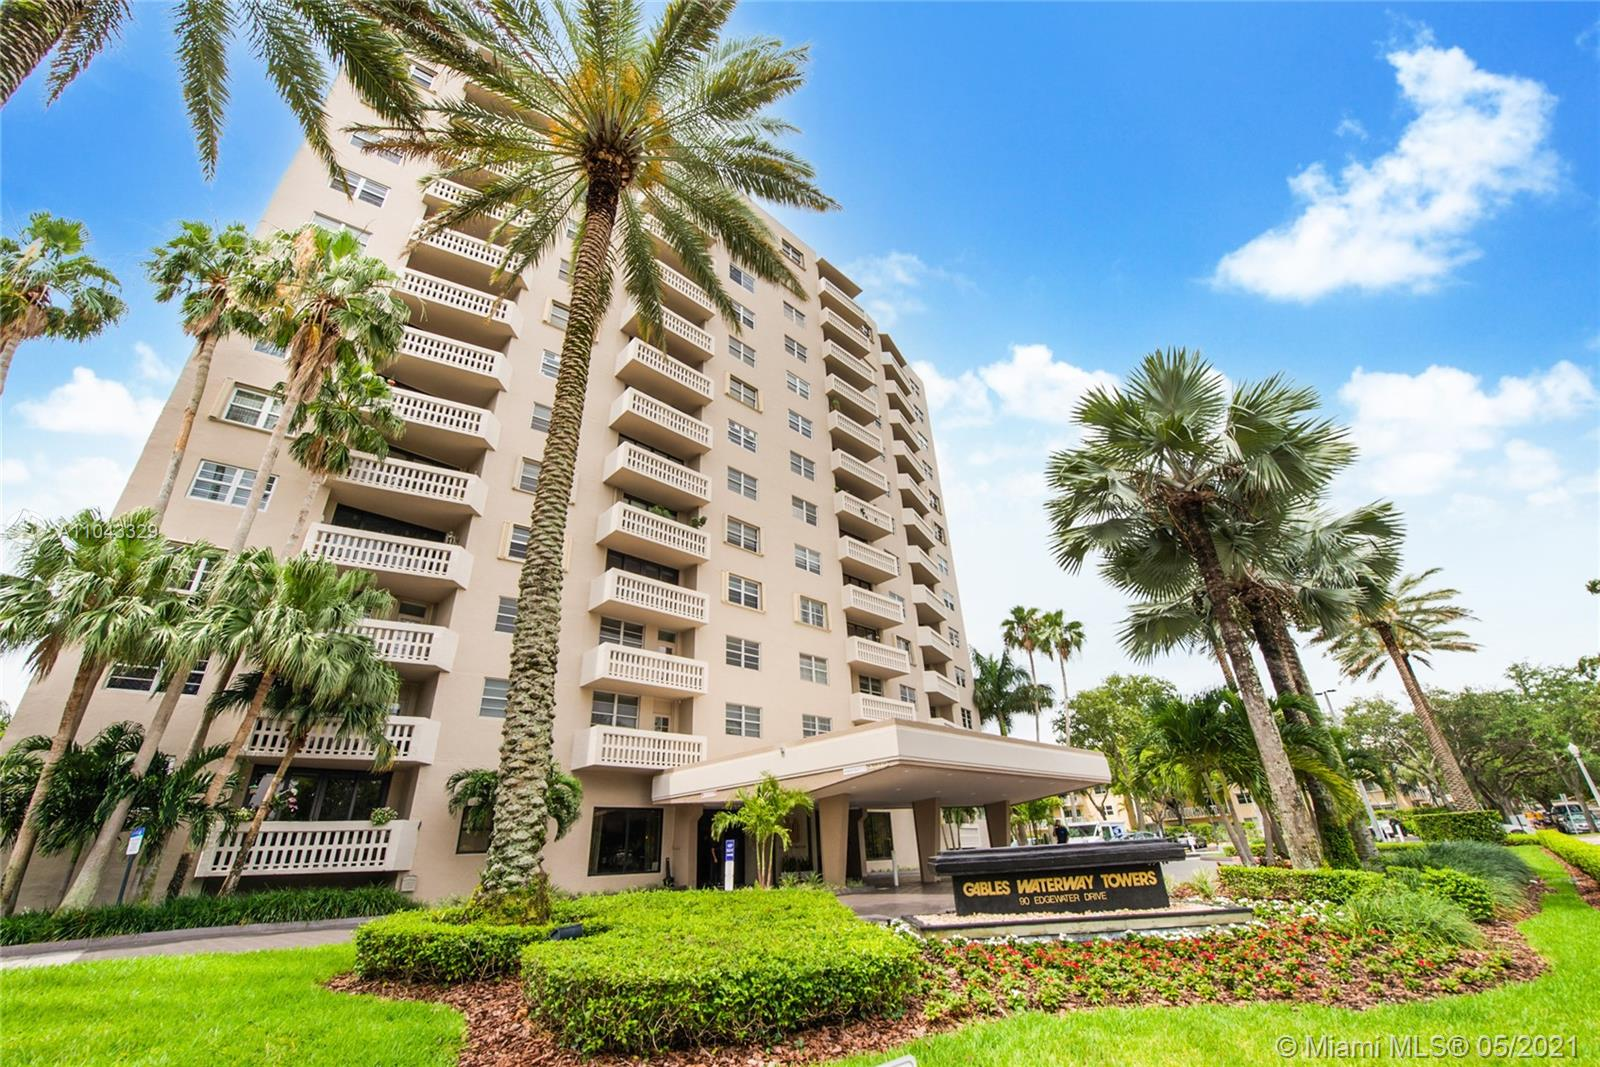 Gables Waterway #308 - 90 Edgewater Dr #308, Coral Gables, FL 33133